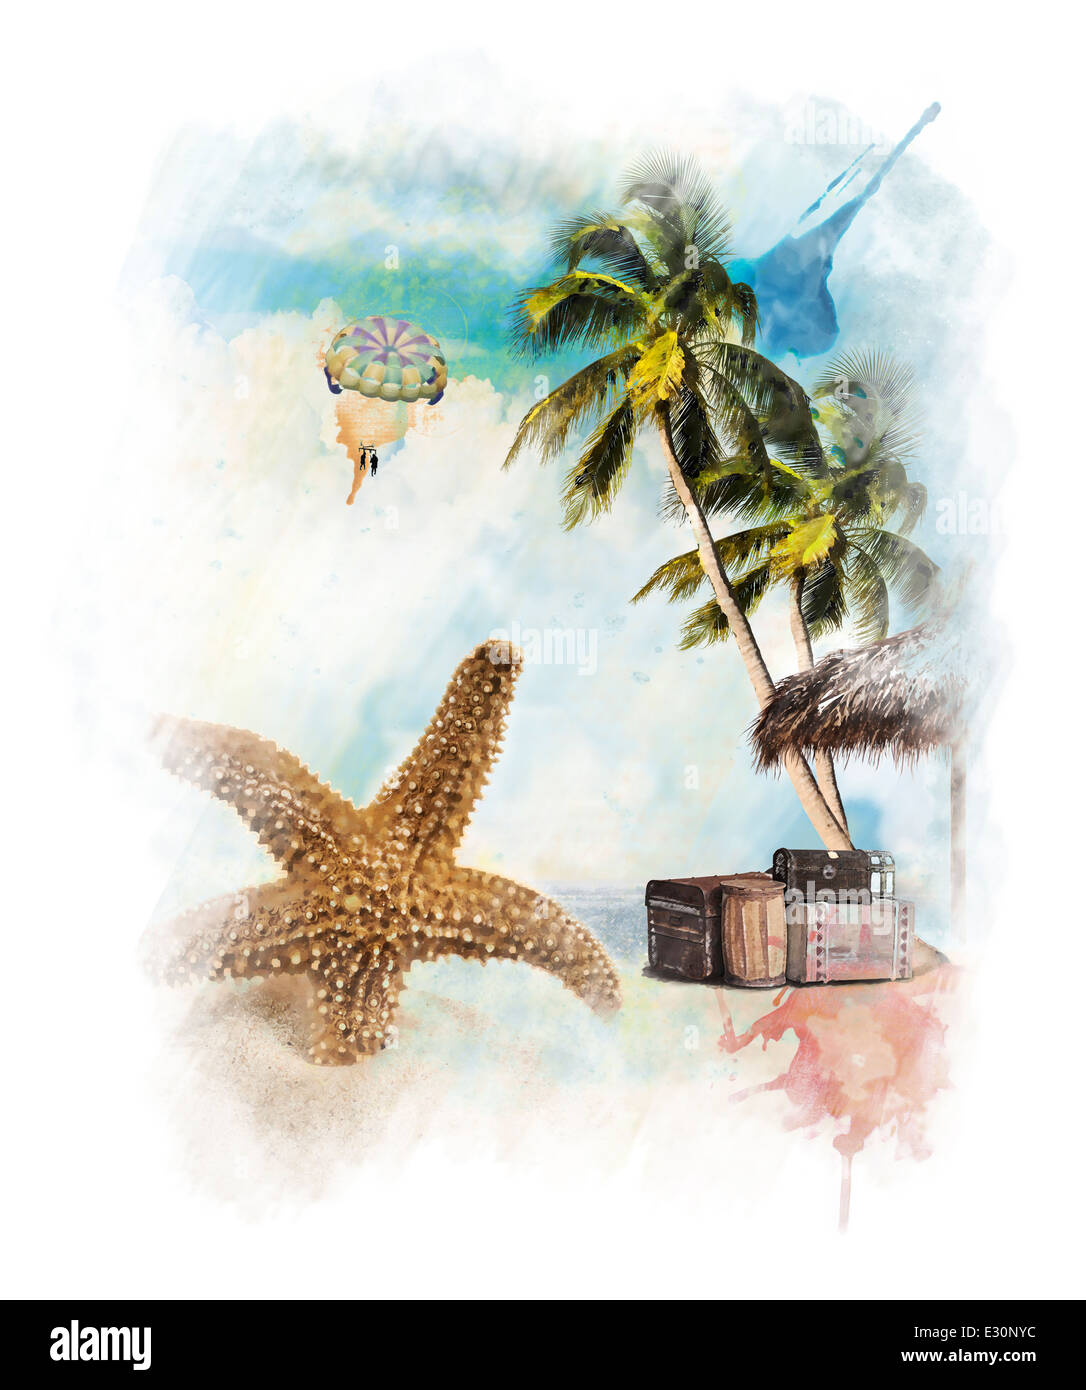 Watercolor Digital Painting Of Vacation Theme - Stock Image